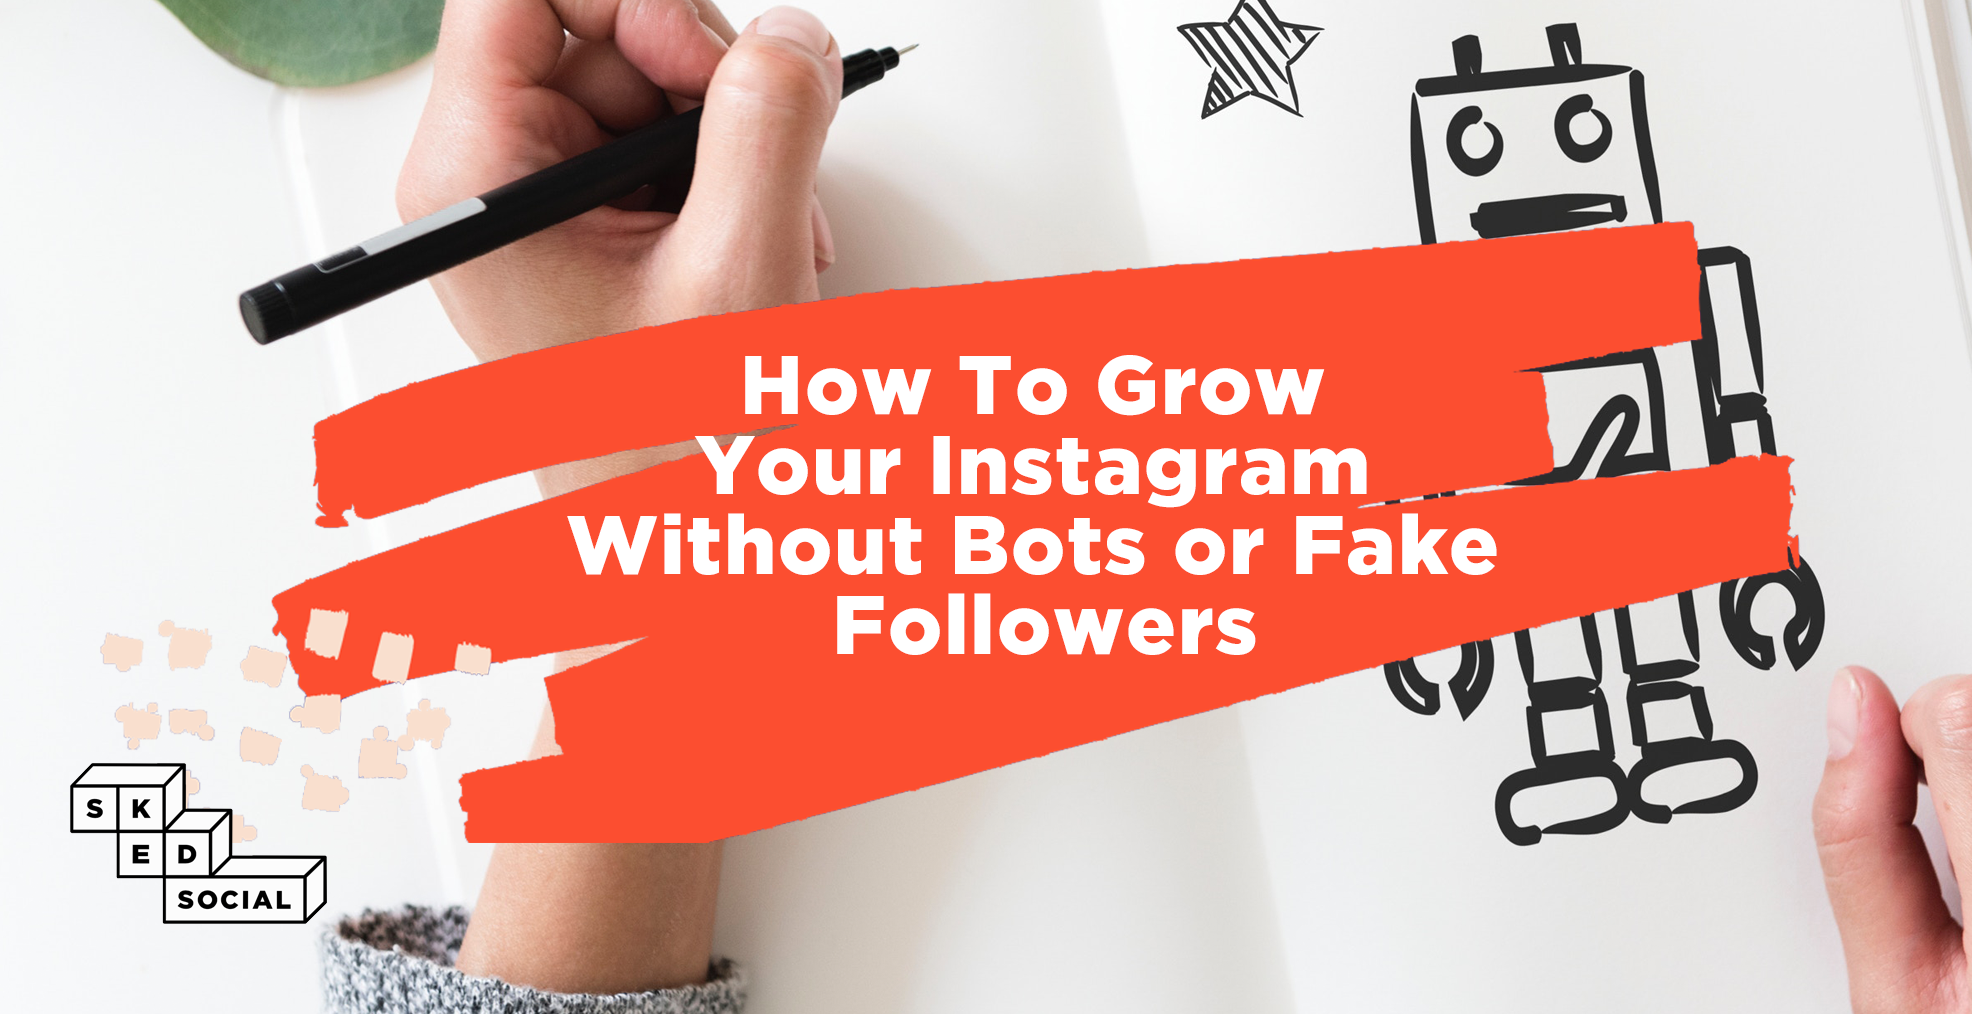 How To Grow On Instagram Without Bots or Fake Followers